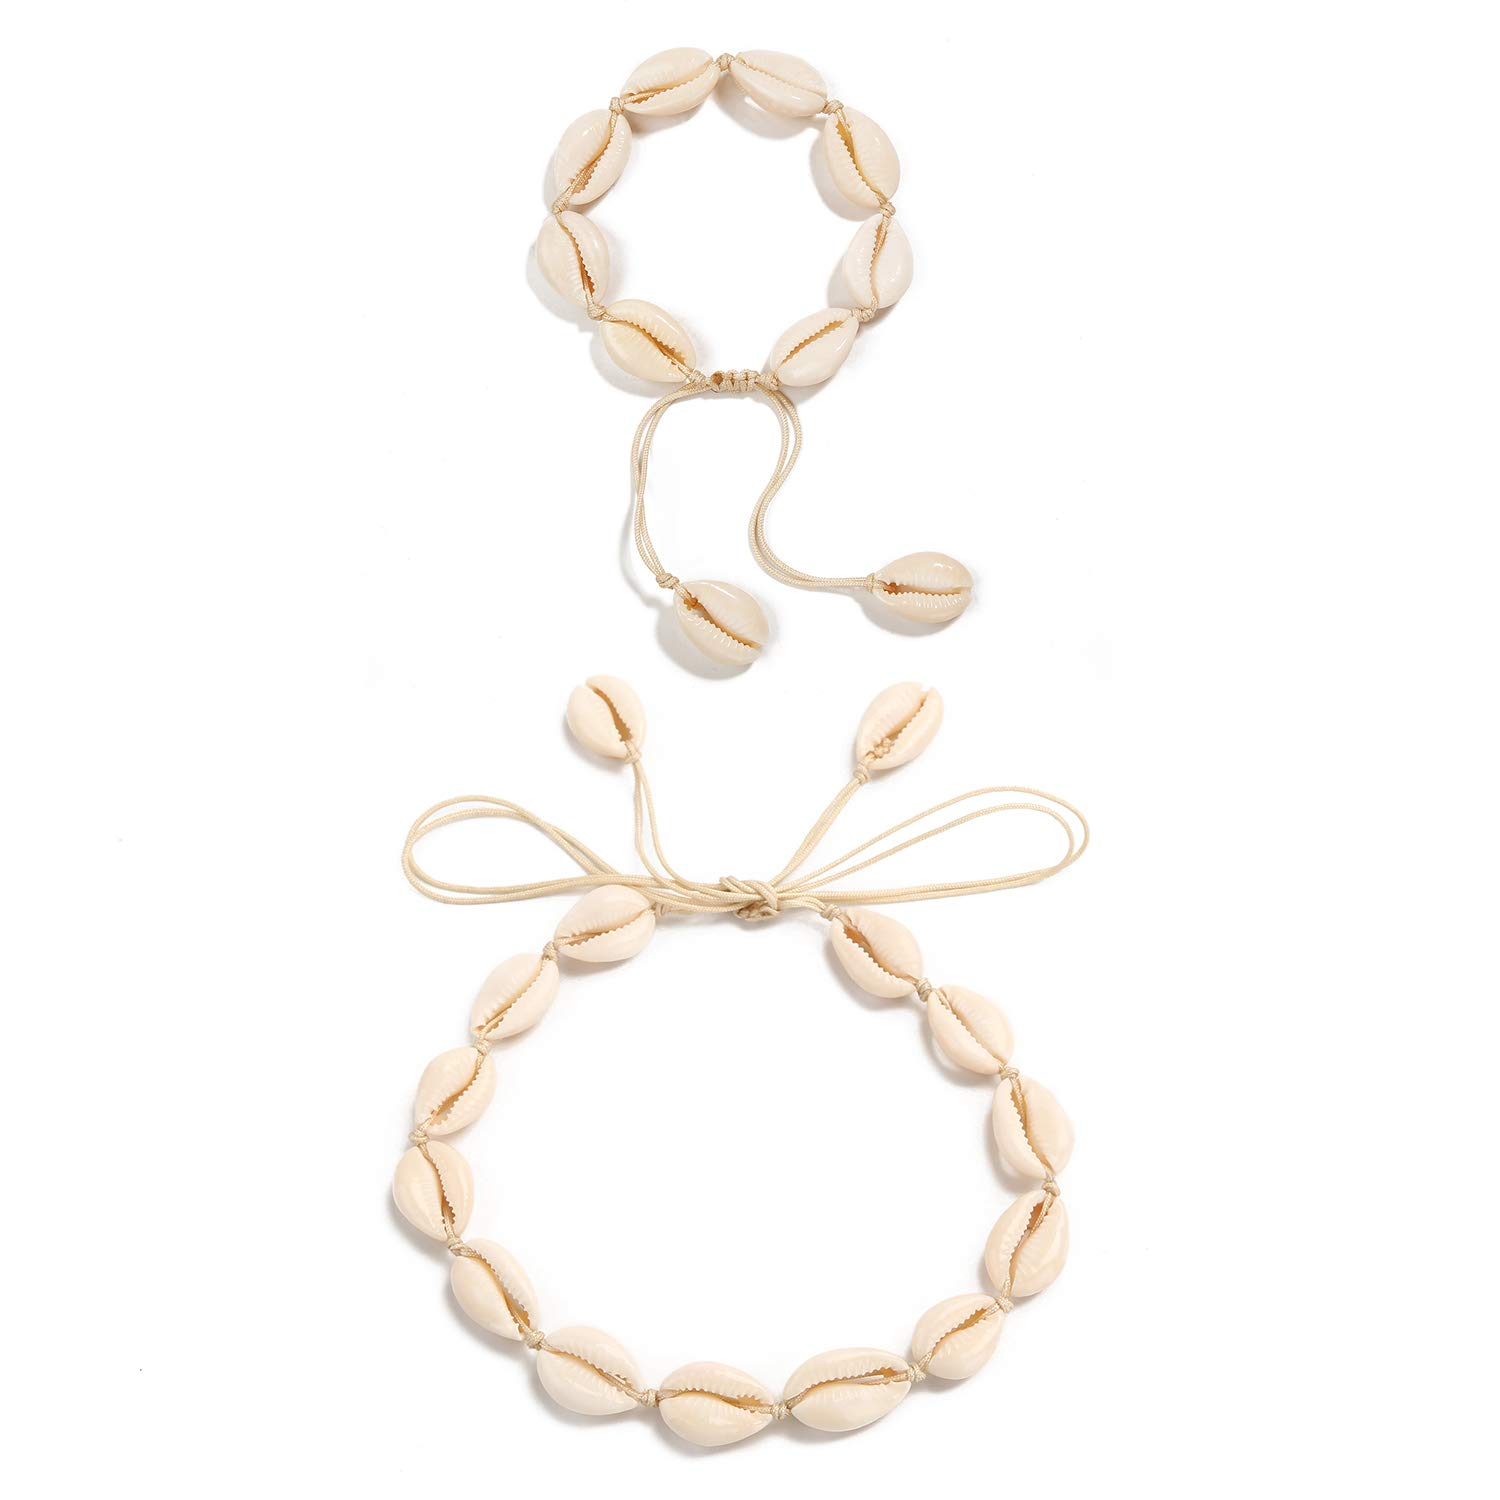 0df52514b782c SCIONE Shell Necklace Choker Natural Seashell Necklace and Anklet Bracelet  Cowrie Shell Necklace Wakiki Hawaii Beach Gypsy Jewelry for Women Girls